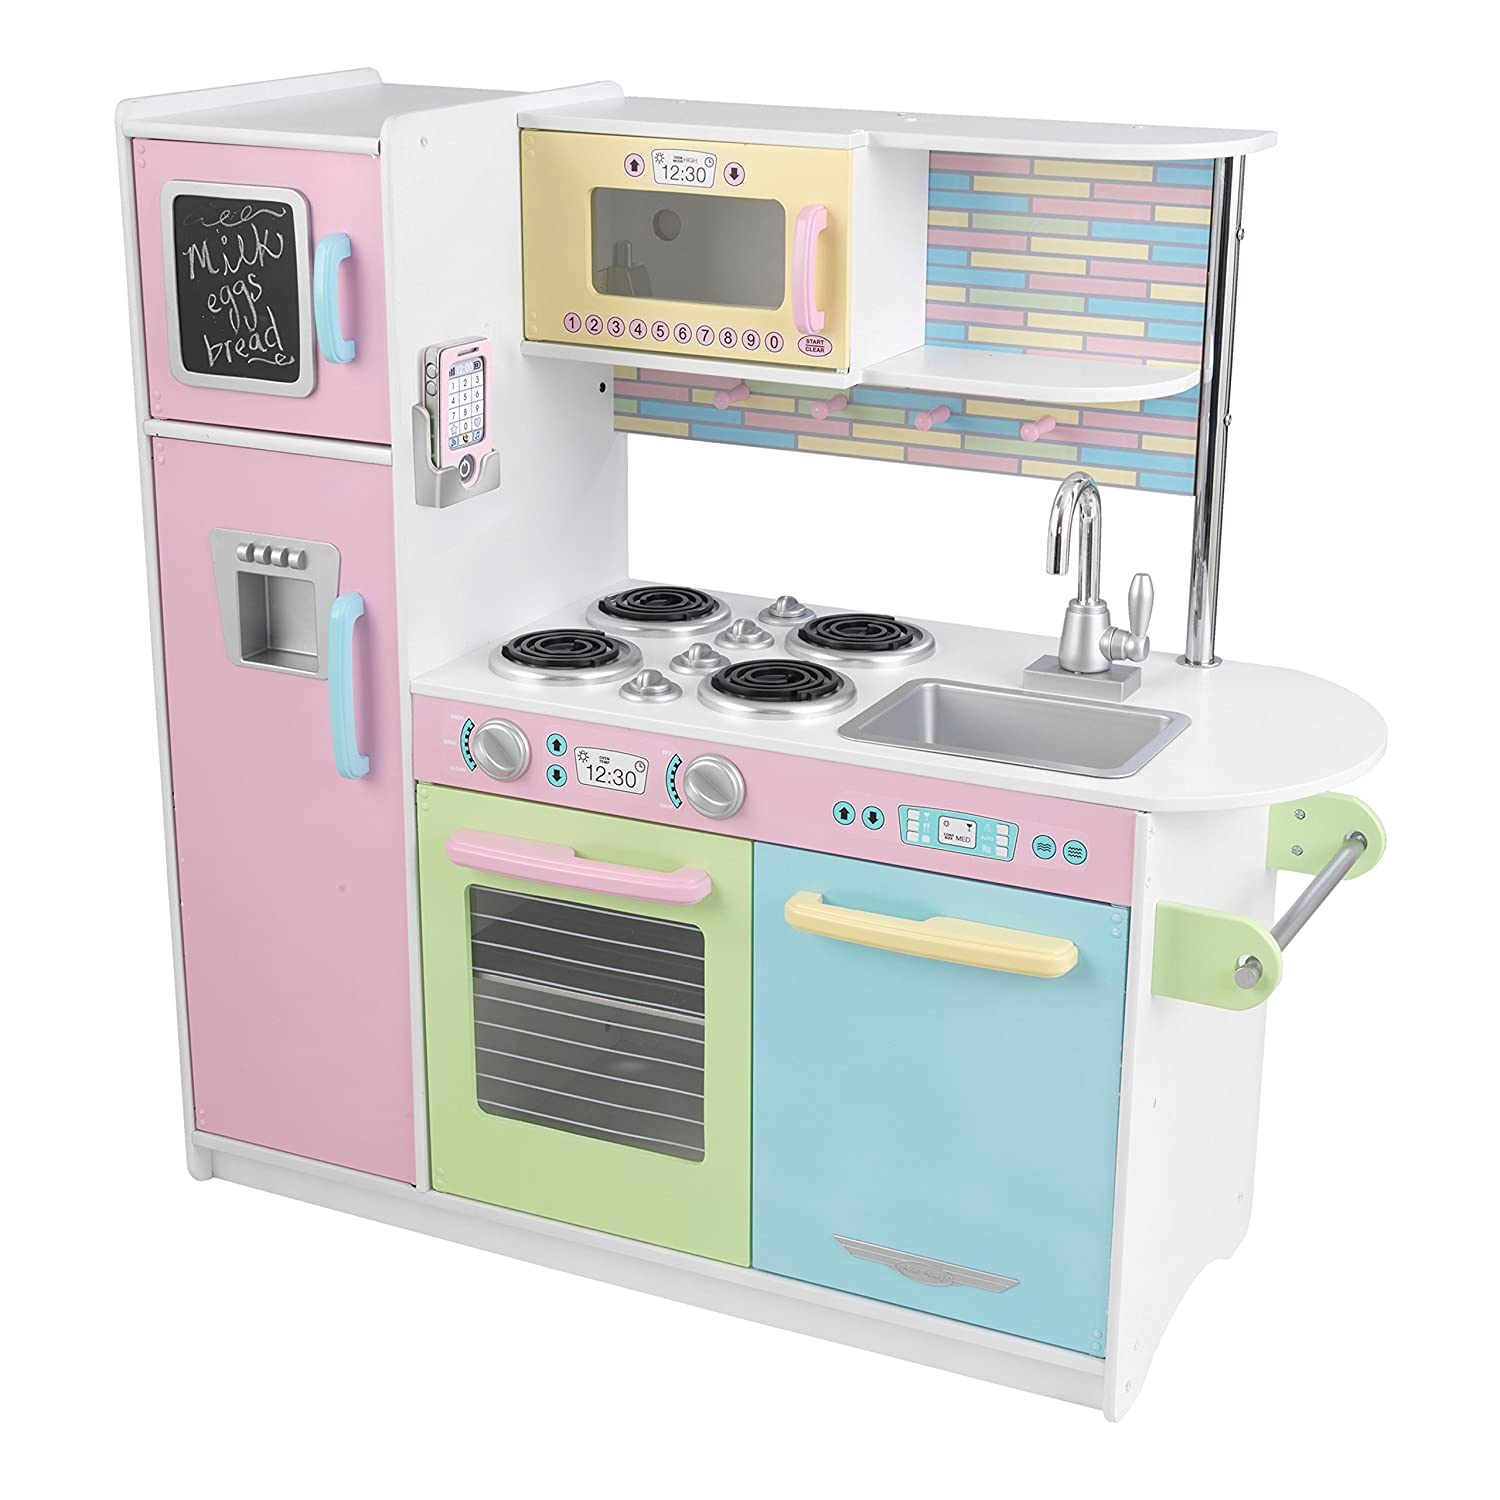 KidKraft Uptown Pastel Kitchen: Amazon.co.uk: Toys & Games